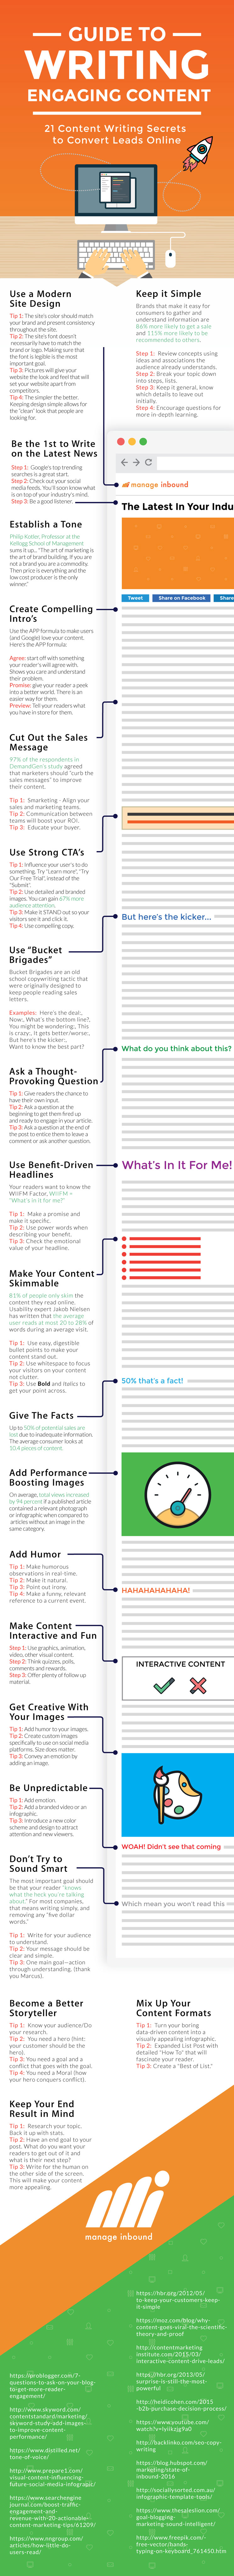 Infographic: How to Create More Engaging Content